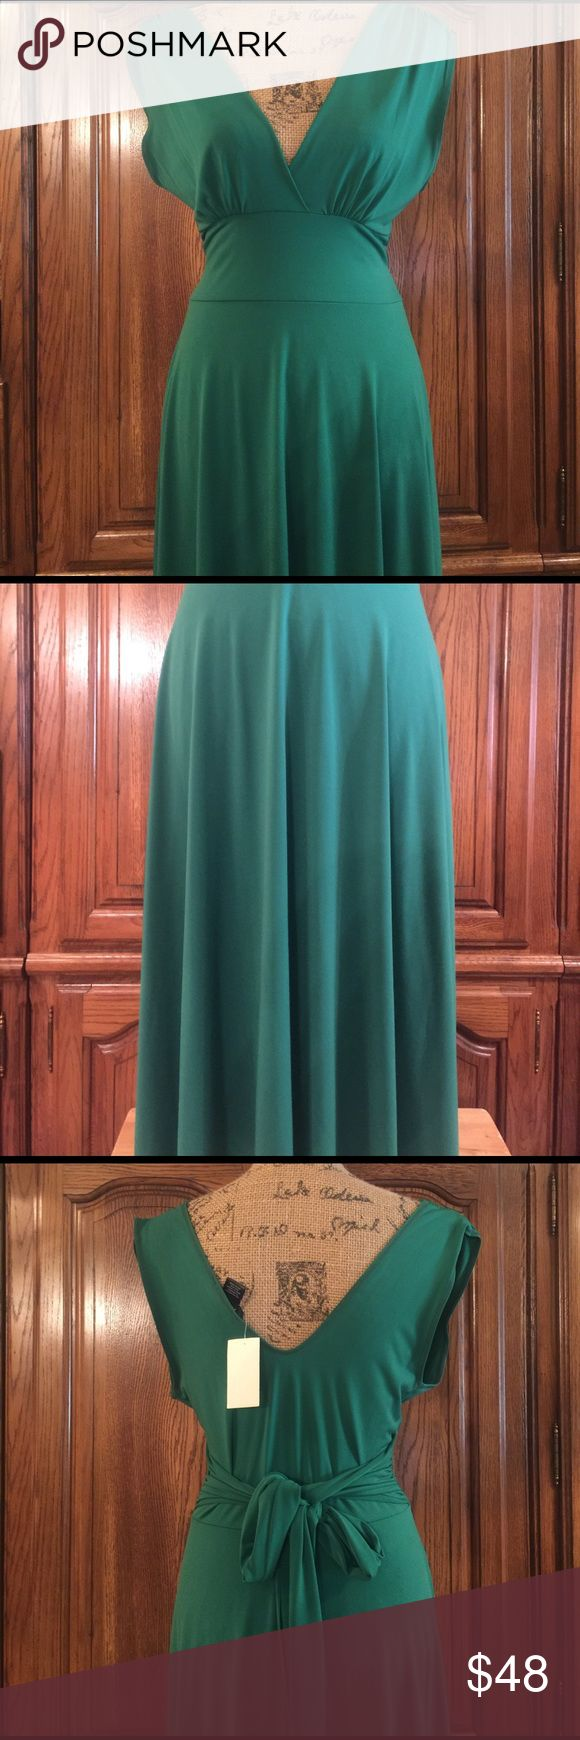 """NWT Arden B. Kelly Green Dress Made of 92% polyester and 8% spandex it is a size large. Crossover front with scoop back and back tie. It is so pretty in person. Pull over with lots of stretch. It measures approximately 17.5"""" flat underarm to underarm and measures approximately 46"""" long measured from shoulder to hem and the waist measures approximately 14.25"""" flat. Arden B Dresses Midi"""